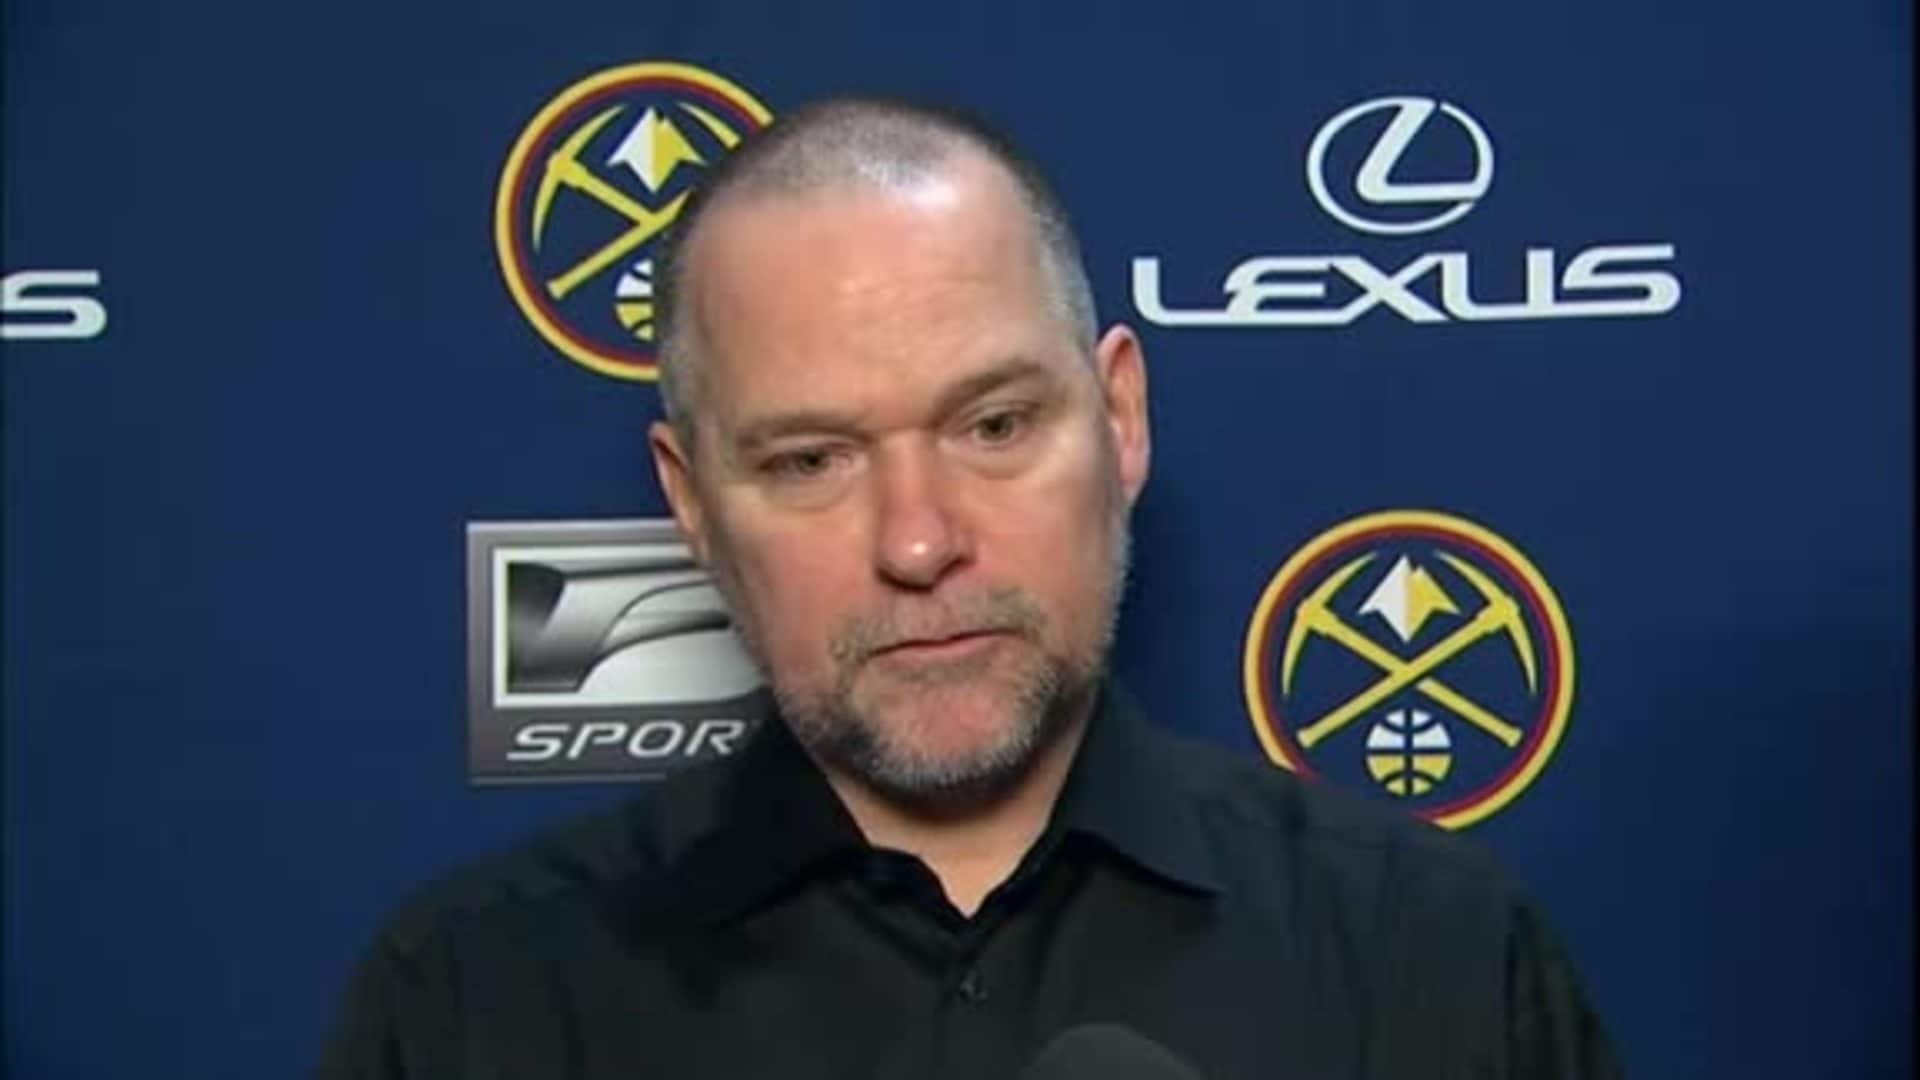 Nuggets vs. Rockets: Michael Malone postgame interview